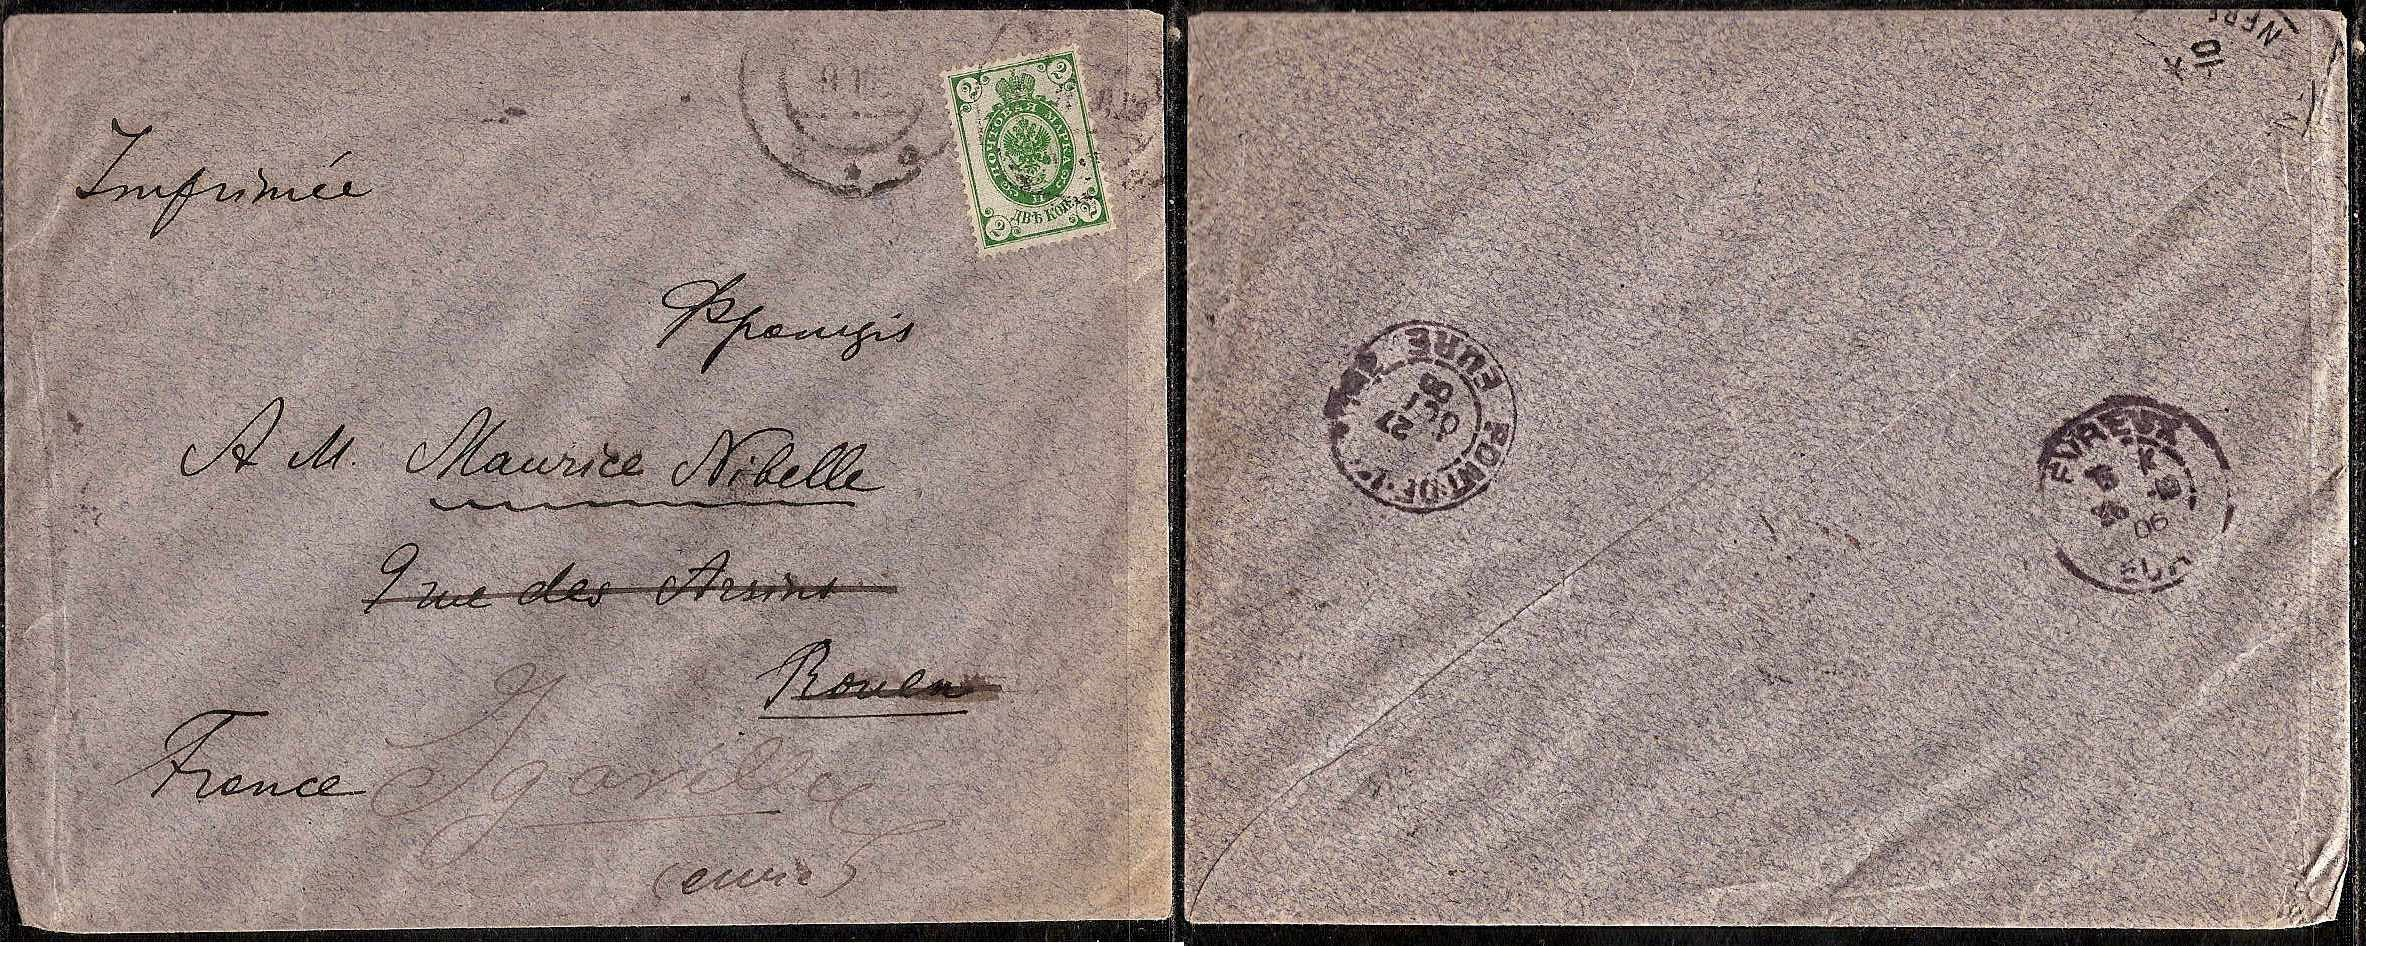 Russia Postal History - 1857-1917 Issue  1904  (Vertically laid paper) Scott 56